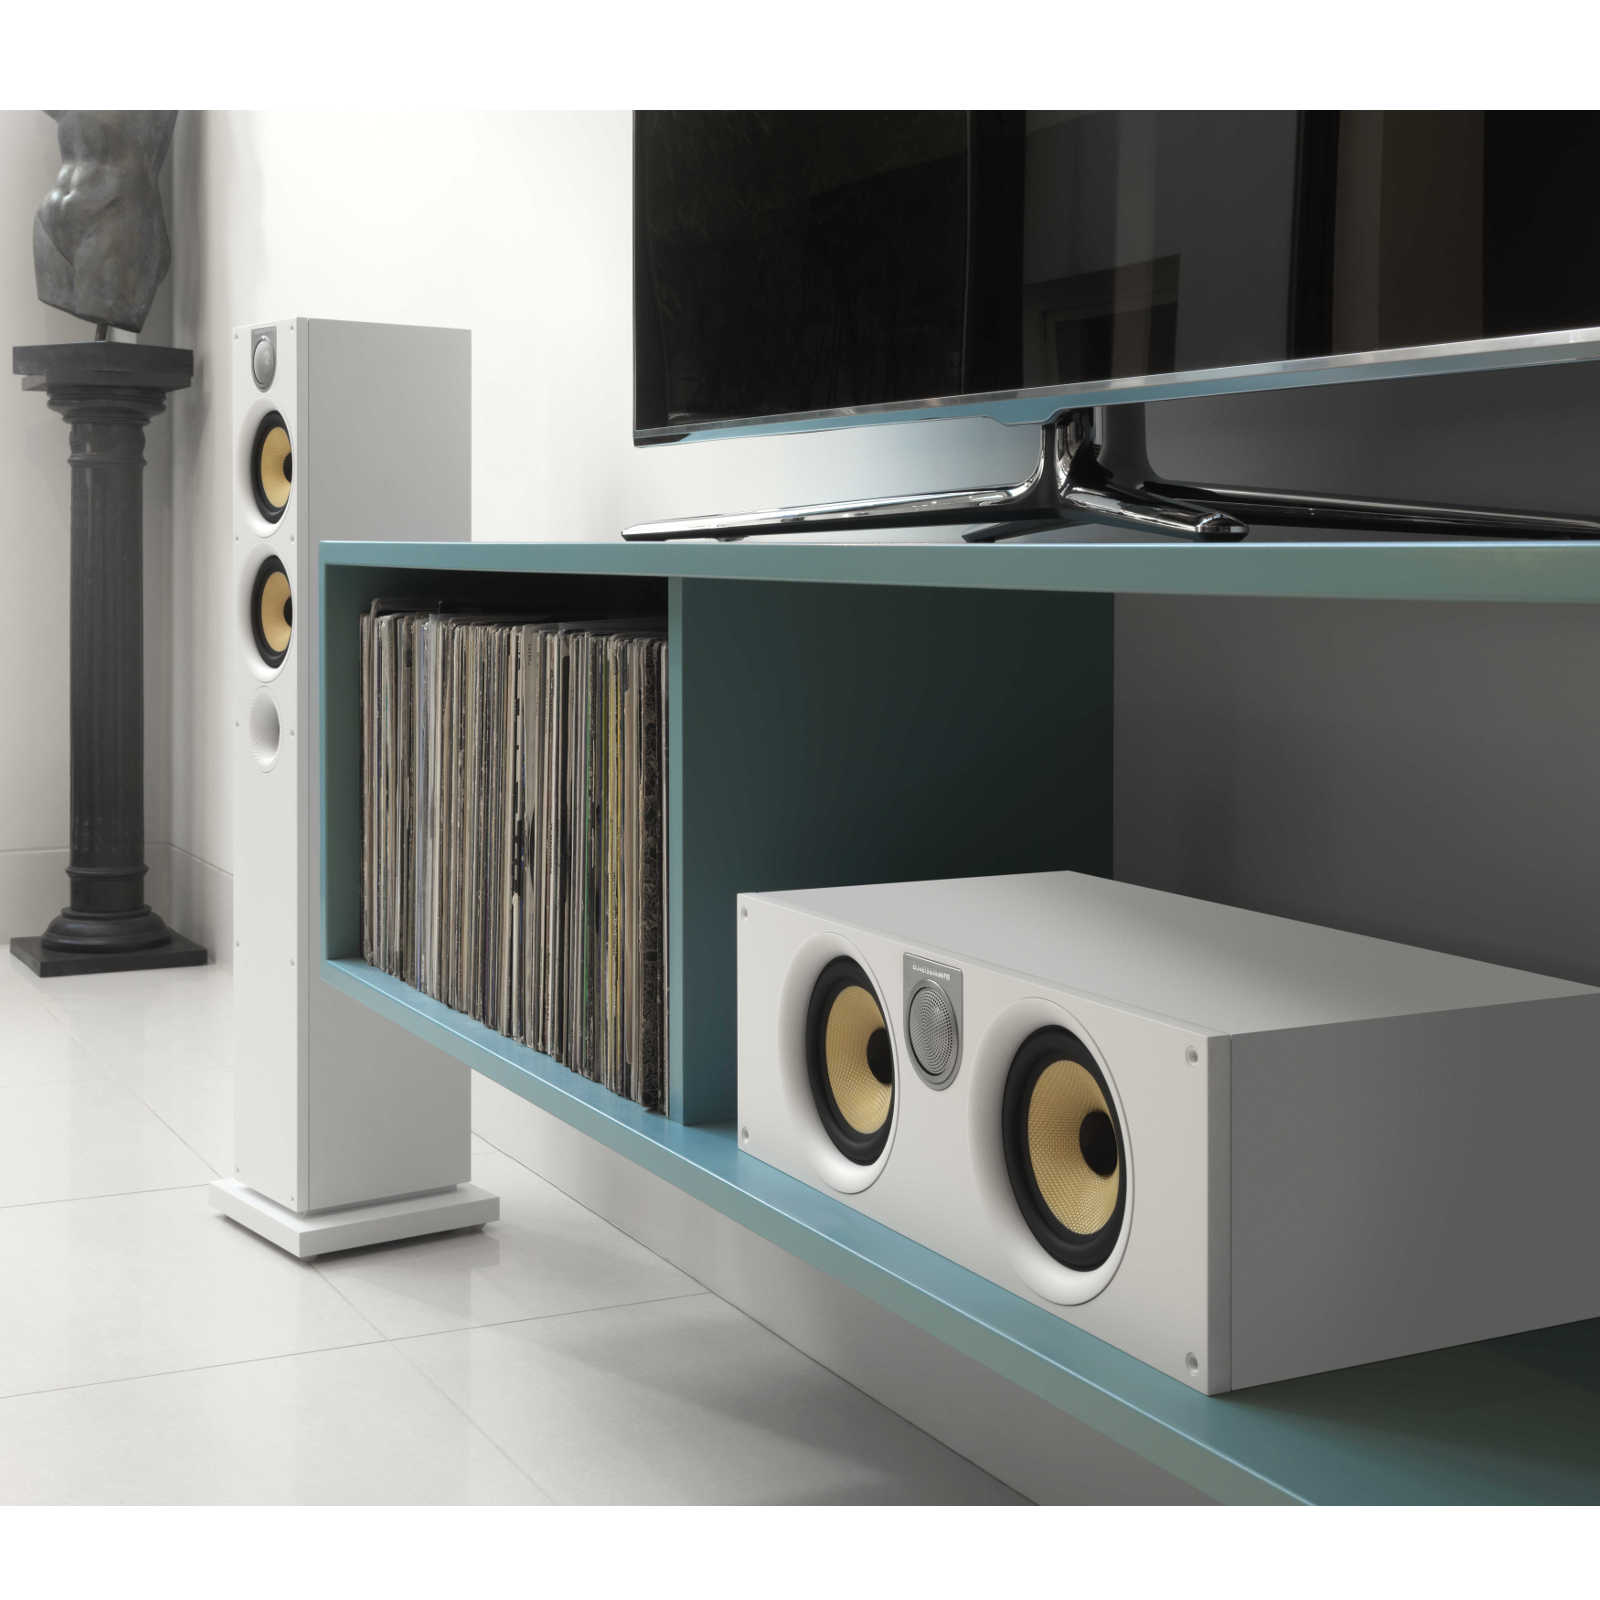 b w htm62 s2 blanc enceintes hifi bowers wilkins sur ldlc. Black Bedroom Furniture Sets. Home Design Ideas